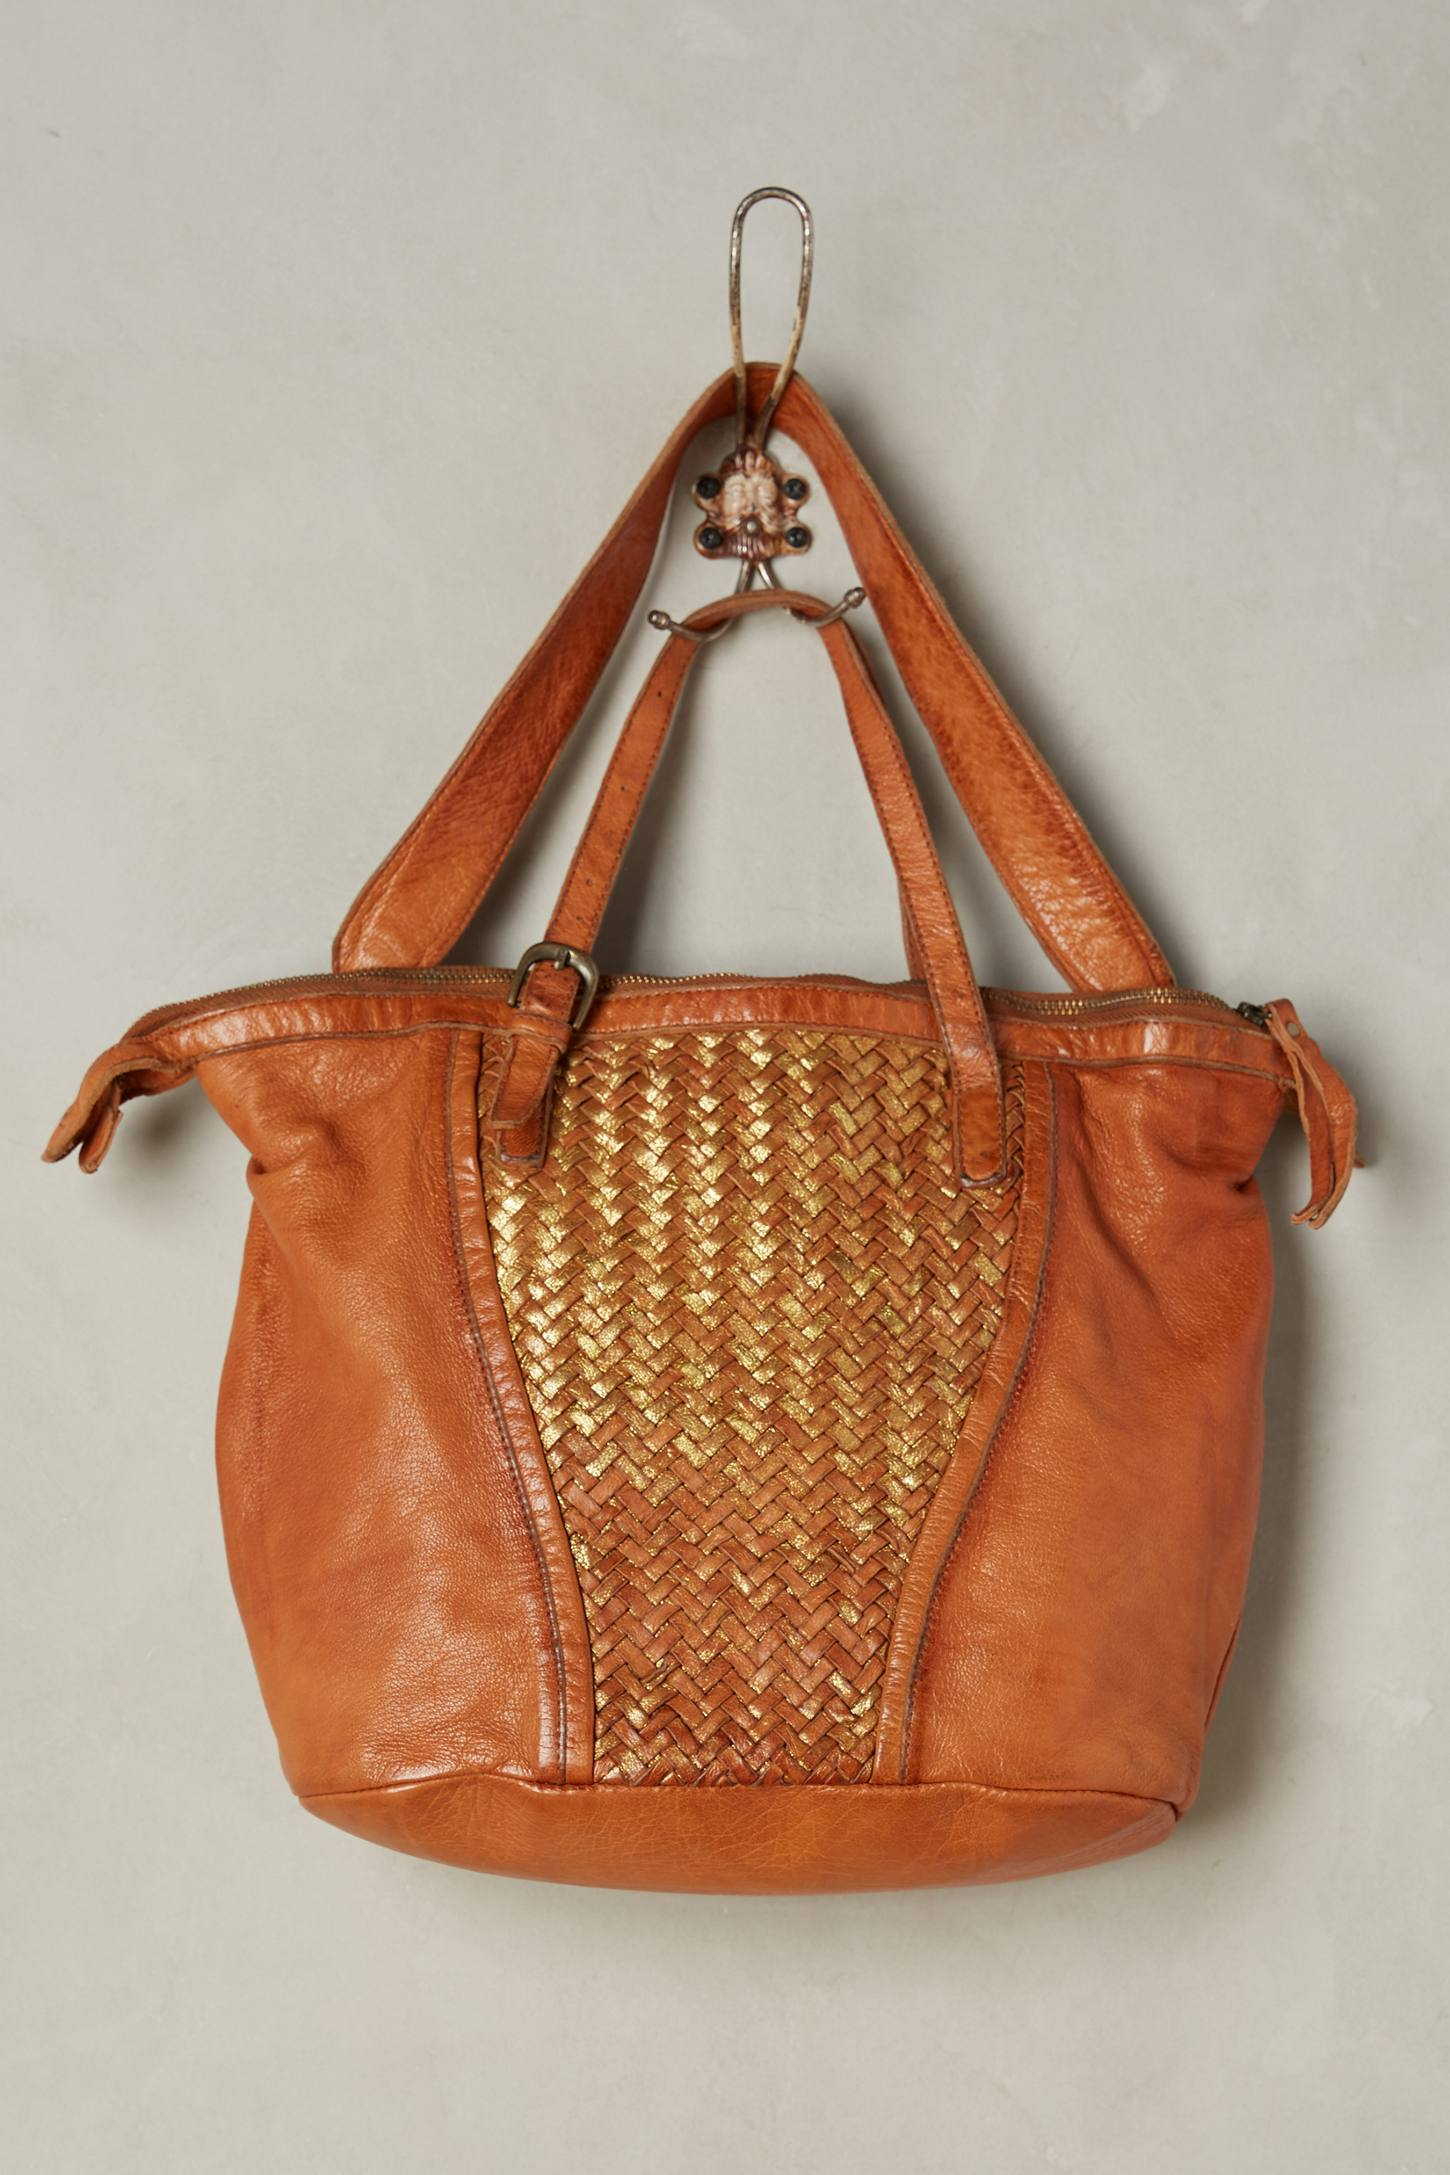 Loretto Metallic Woven Bag